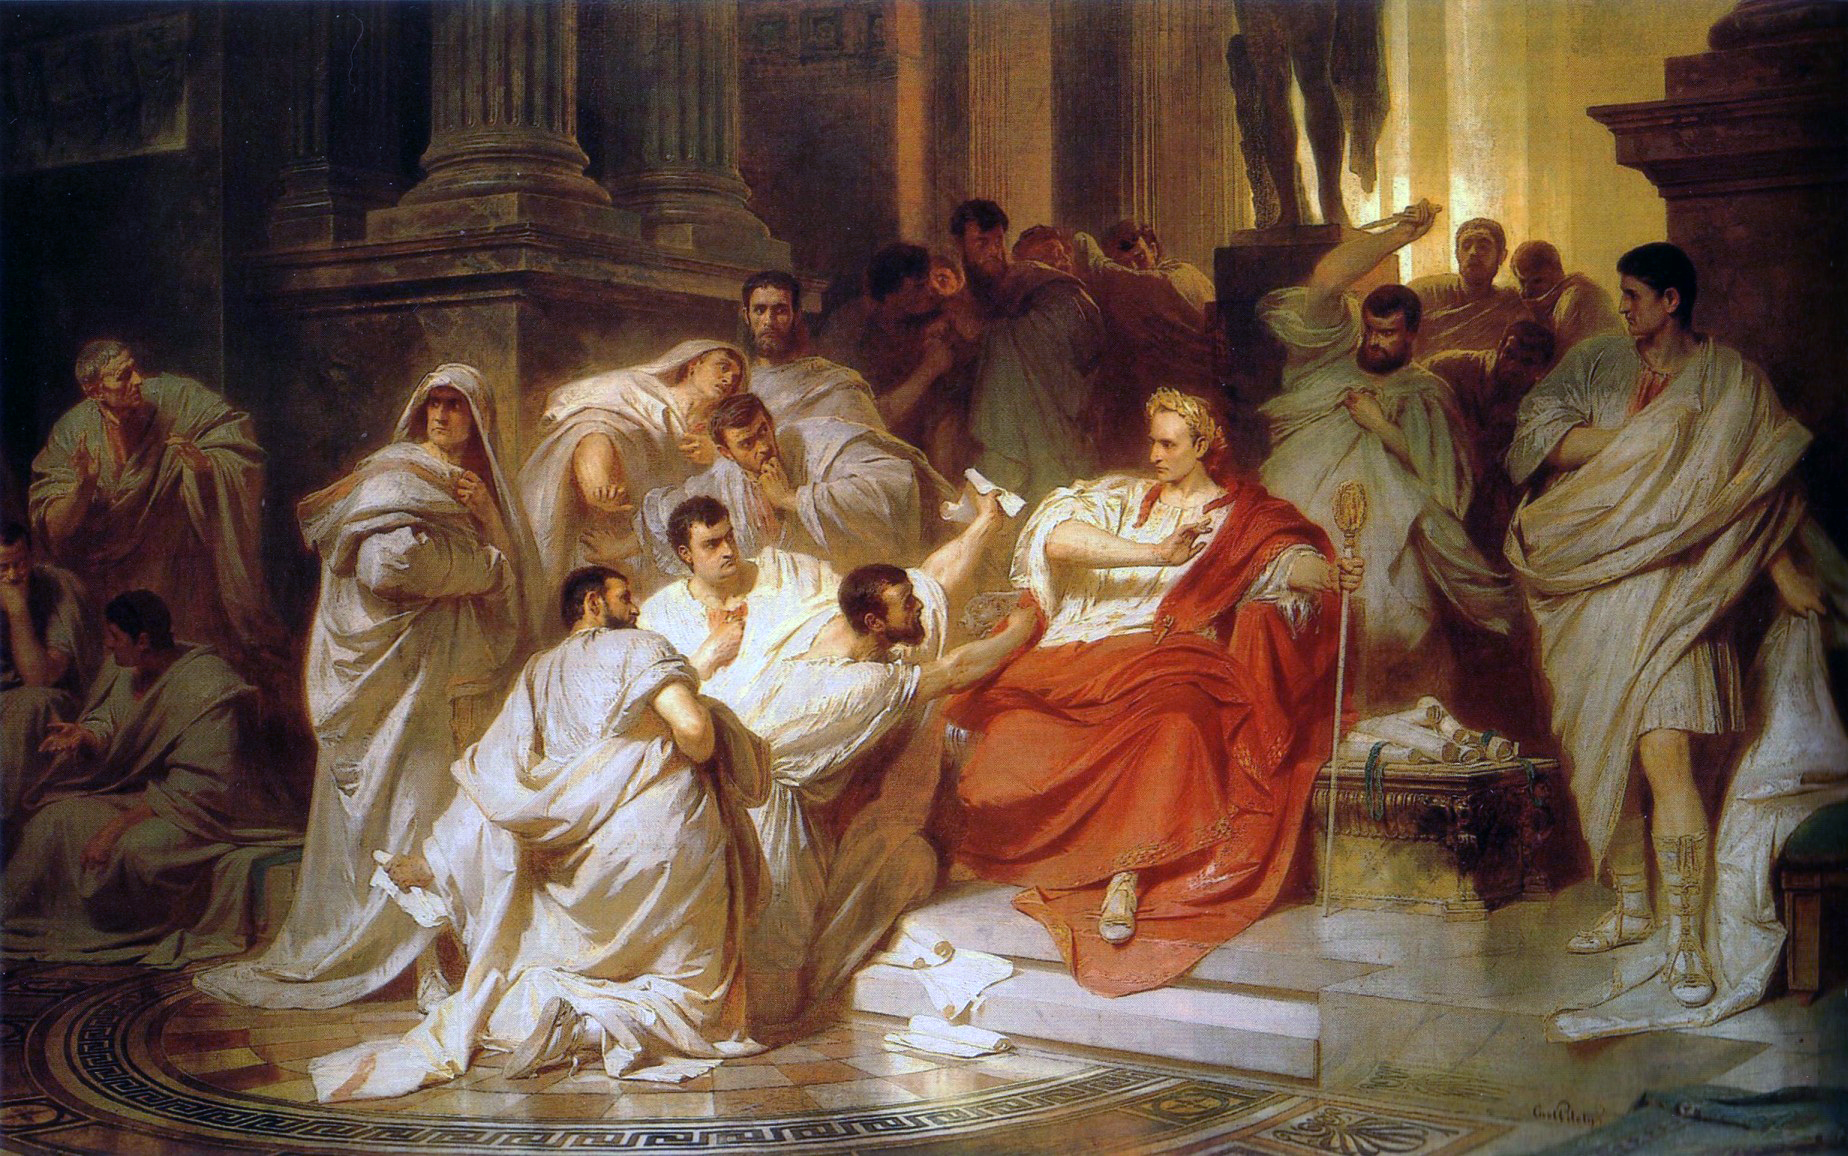 a biography of julius caesar the ruler of rome Et tu, brute but before his state-sanctioned murder, the statesman, general and dictator had conquered half the known world and still found time for a dalliance with cleopatra julius caesar was born in 100bc in rome to a well known, but not rich family the young caesar left rome for military service in asia and cilicia.